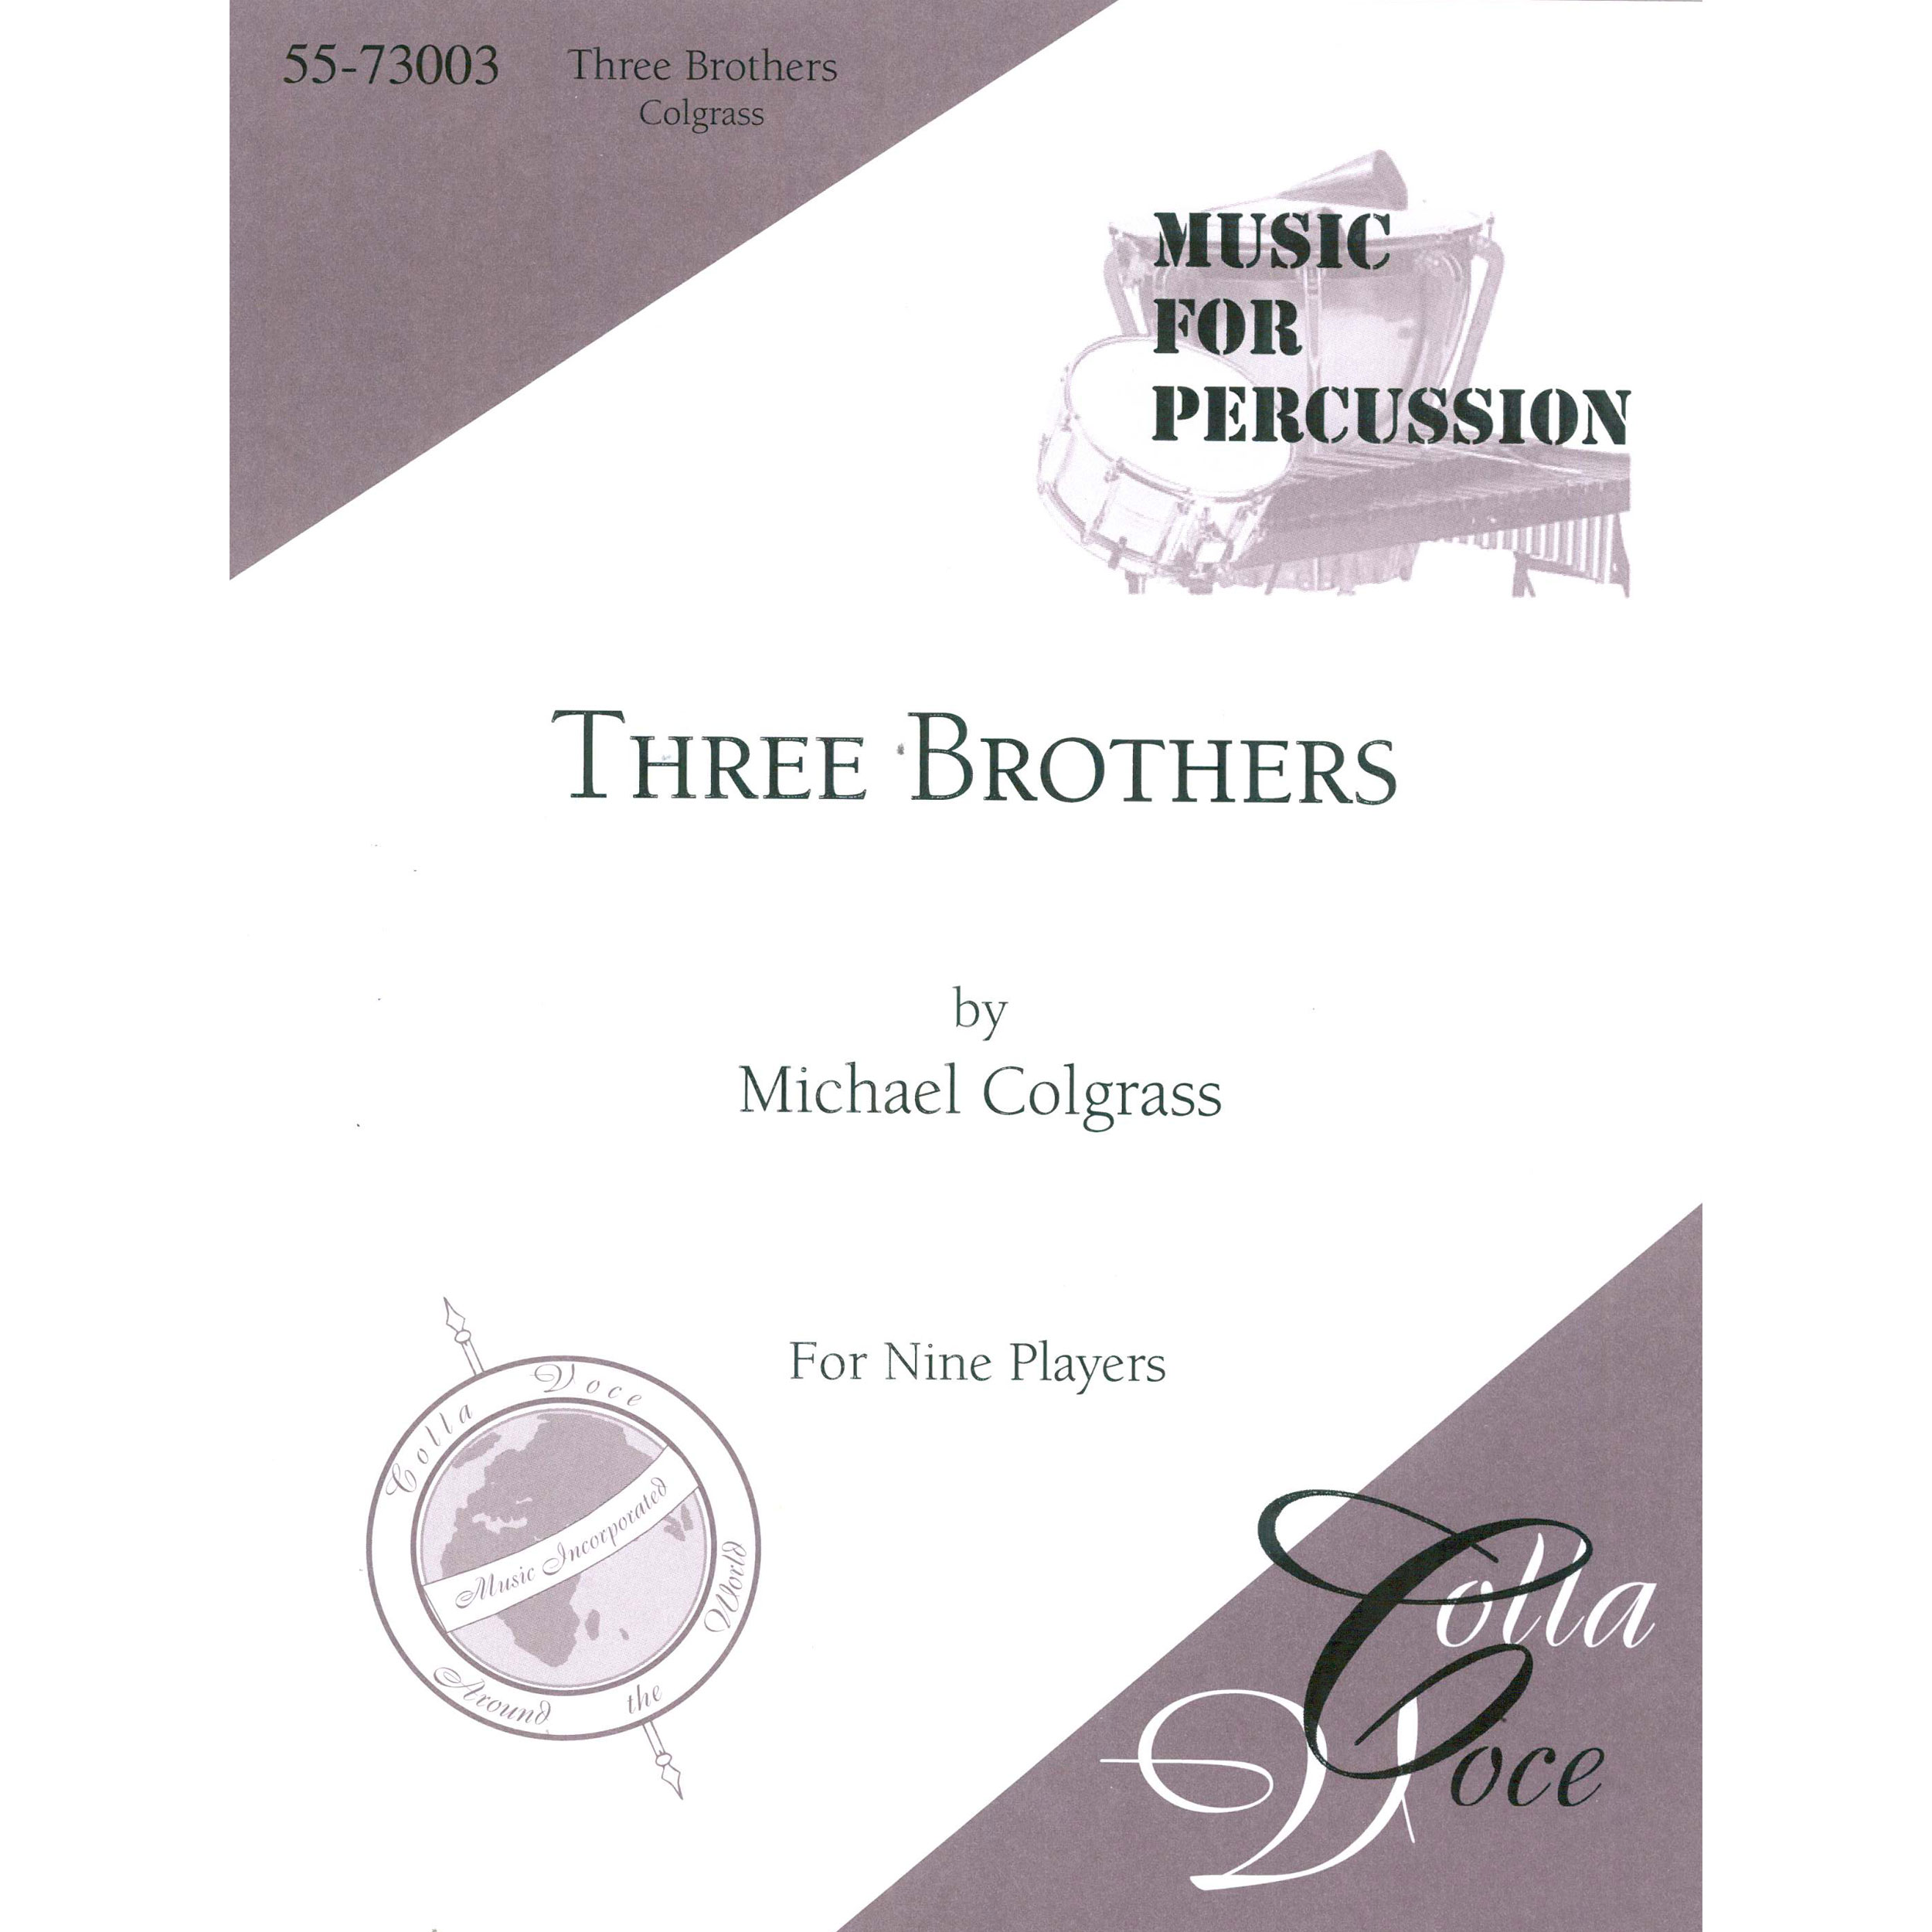 Three Brothers by Michael Colgrass